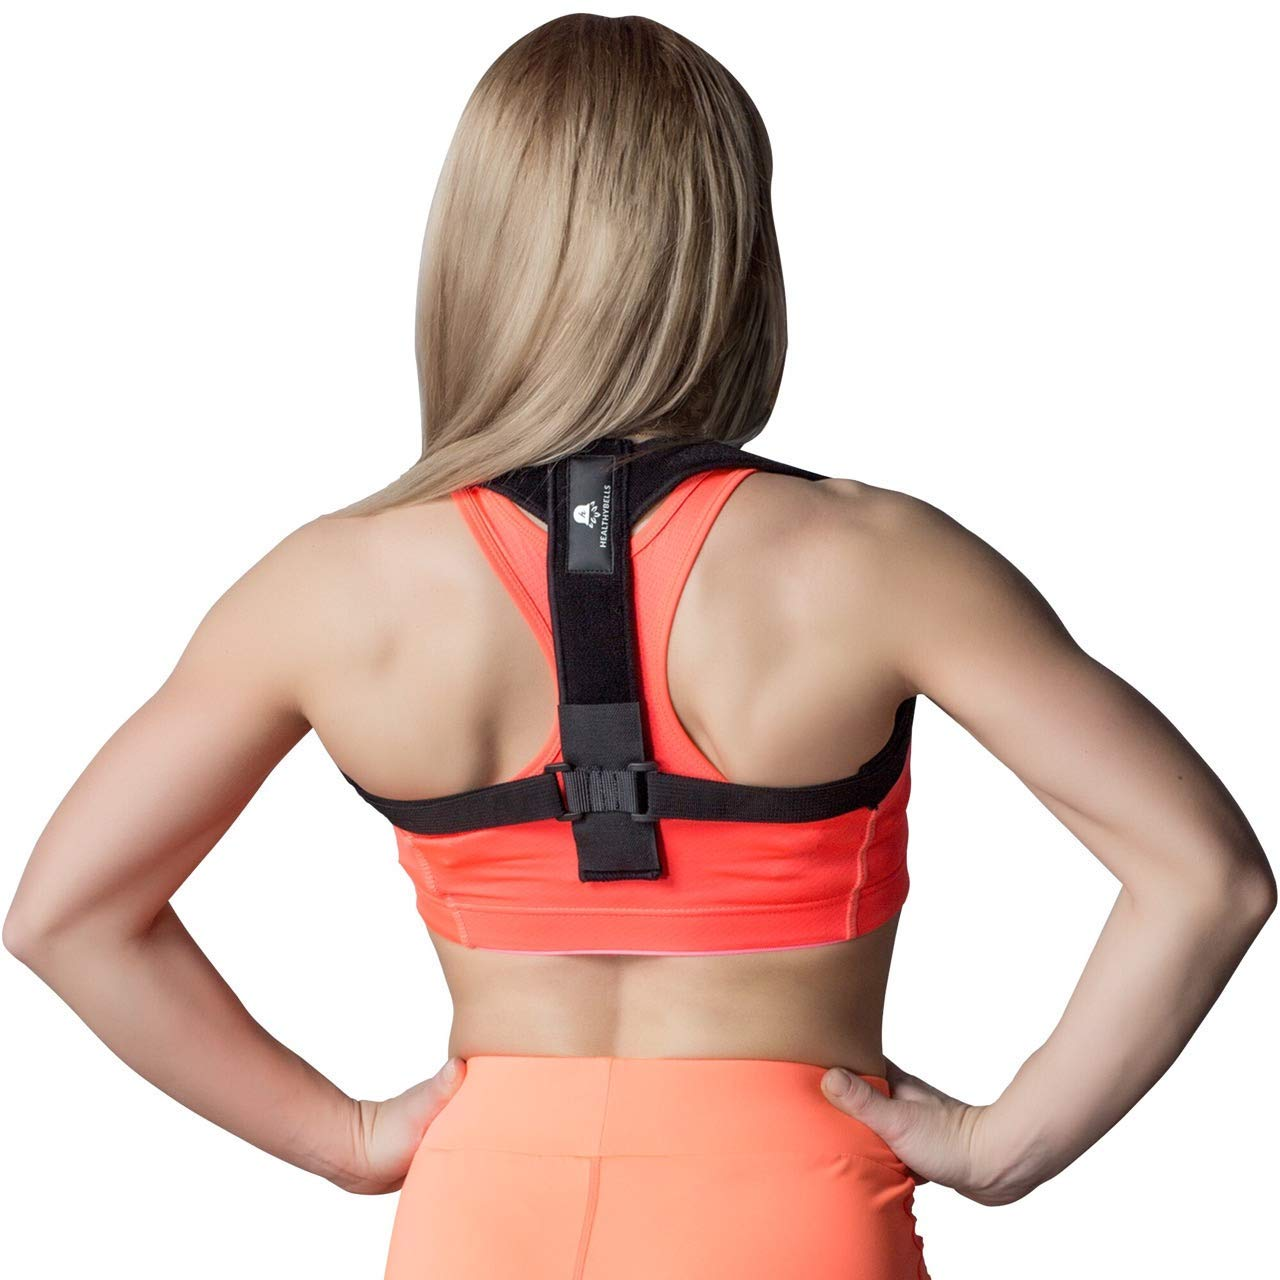 2 in 1 Clavicle Brace and Posture Corrector for Women & Men – Premium Clavicle Support with Super Soft Straps – Shoulder Posture Corrector – Prevents Slouching – Relieves Neck and Upper Back Pain